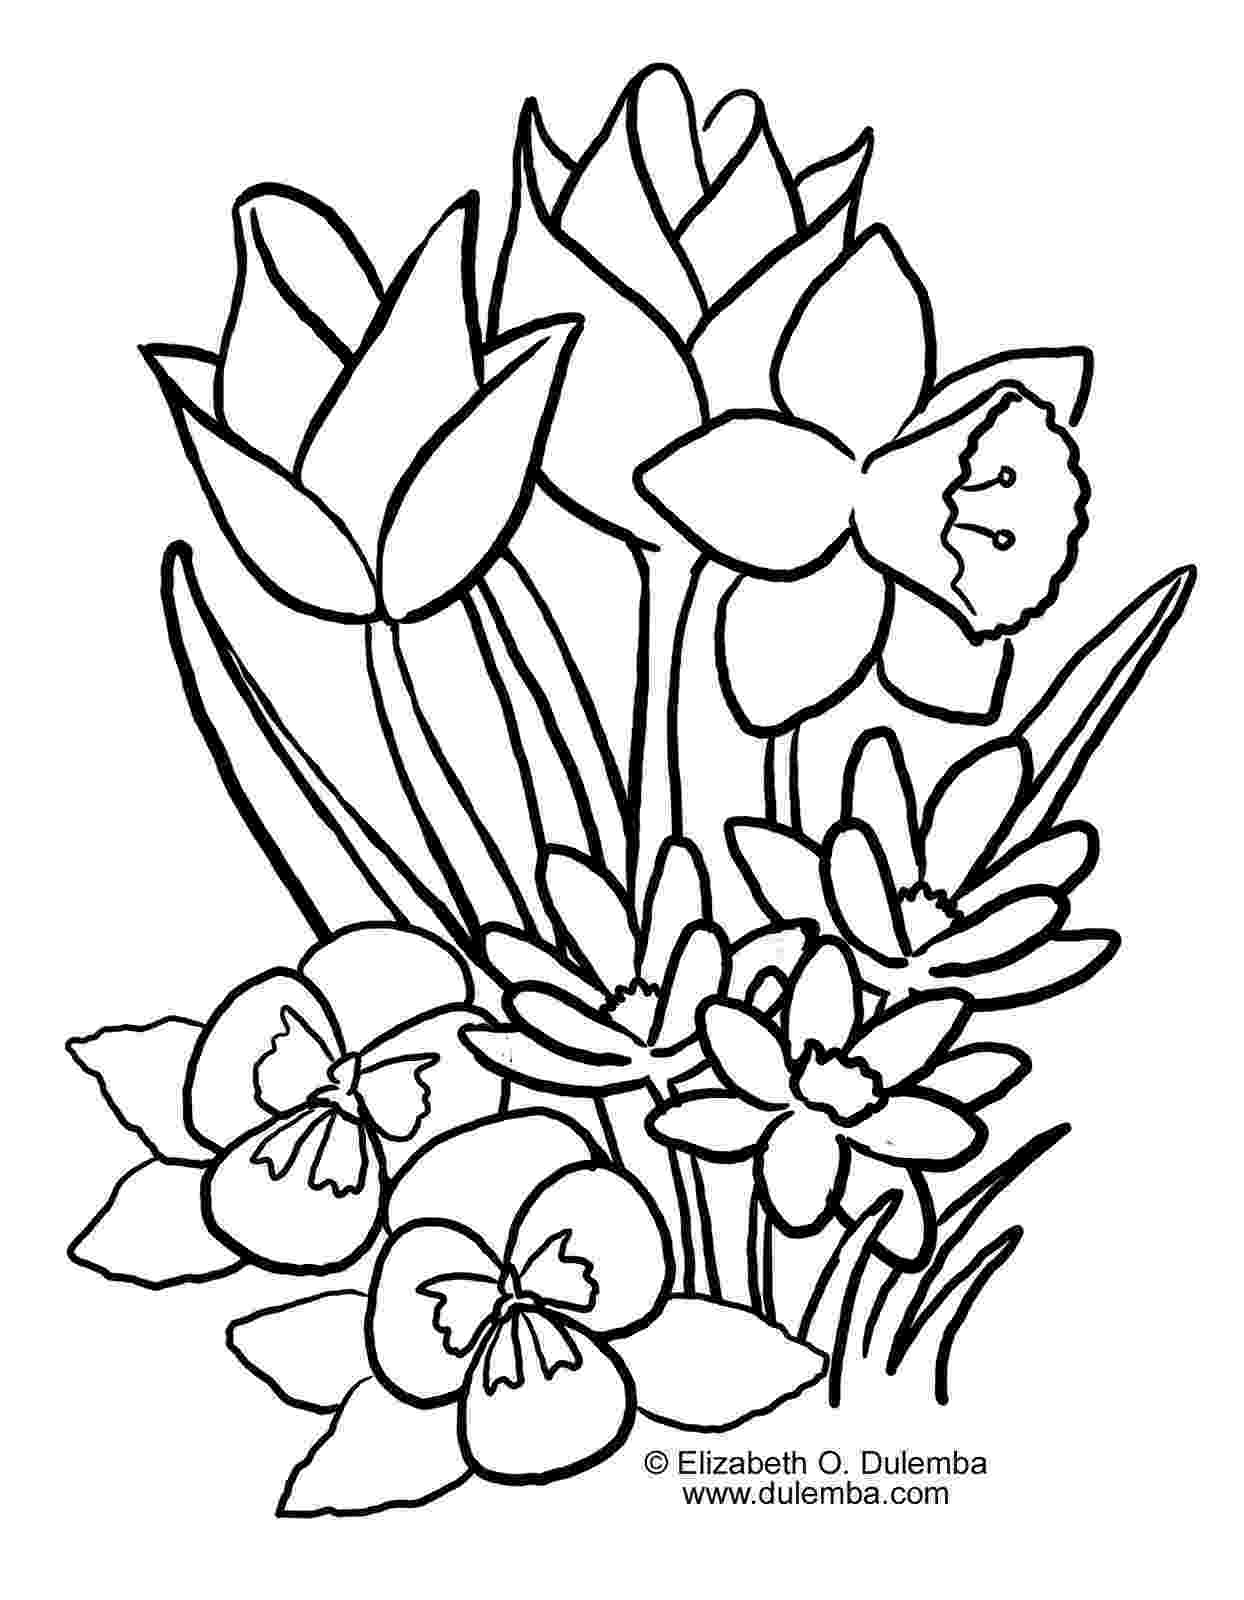 spring flowers coloring pages to print spring flowers coloring page free printable coloring pages coloring flowers spring pages print to